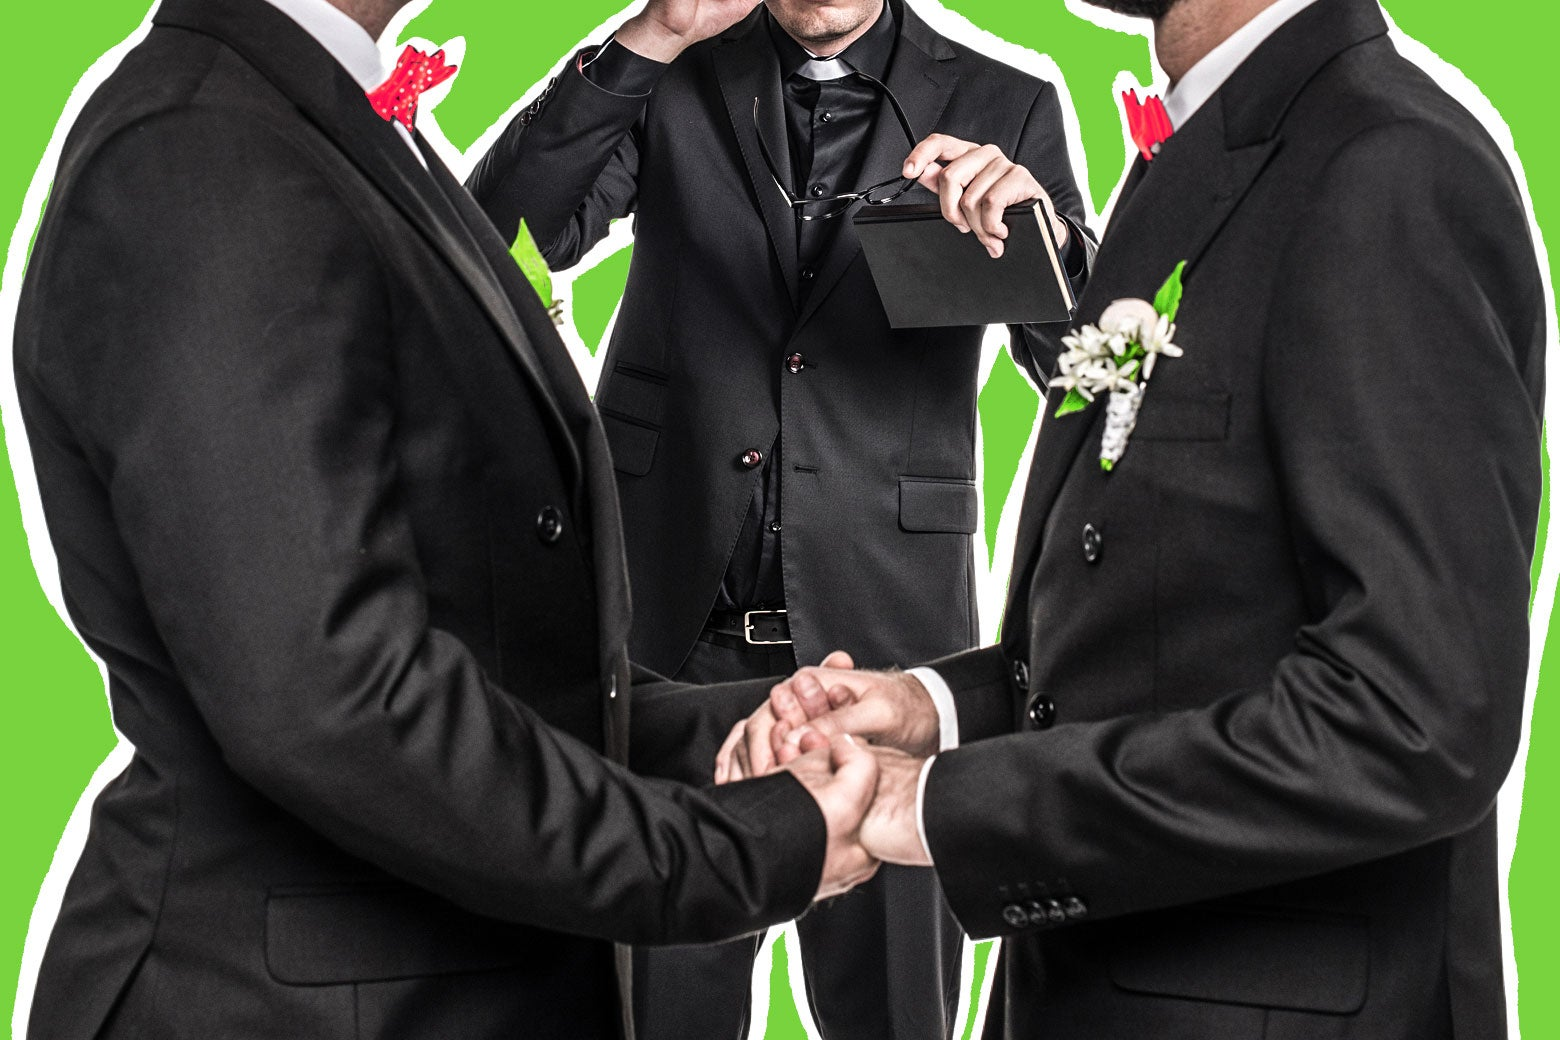 Two men stand to wed while a man officiates the ceremony. Photo illustration by Slate. Photo by Thinkstock.